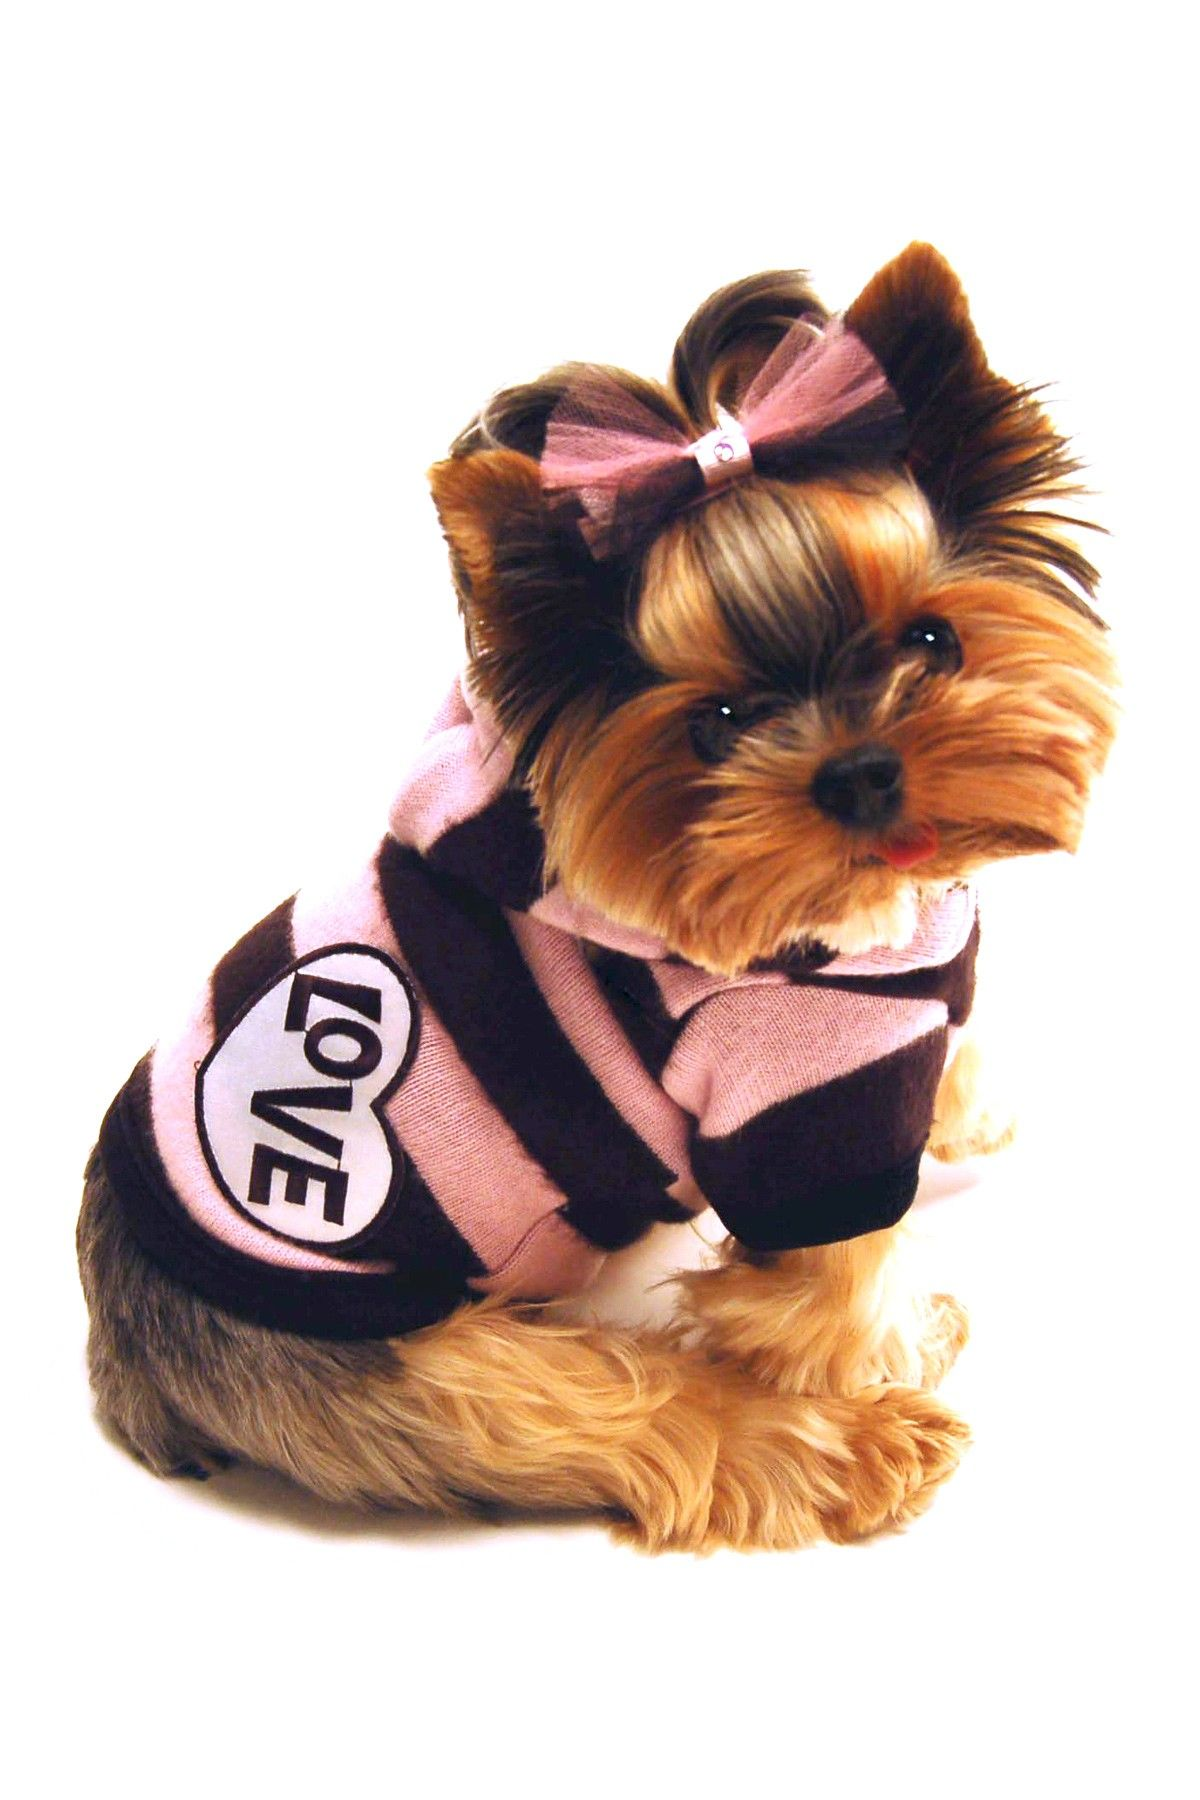 Yorkshire Terrier Puppy Dogs Yorkie Puppy Dog Clothing Dogs In